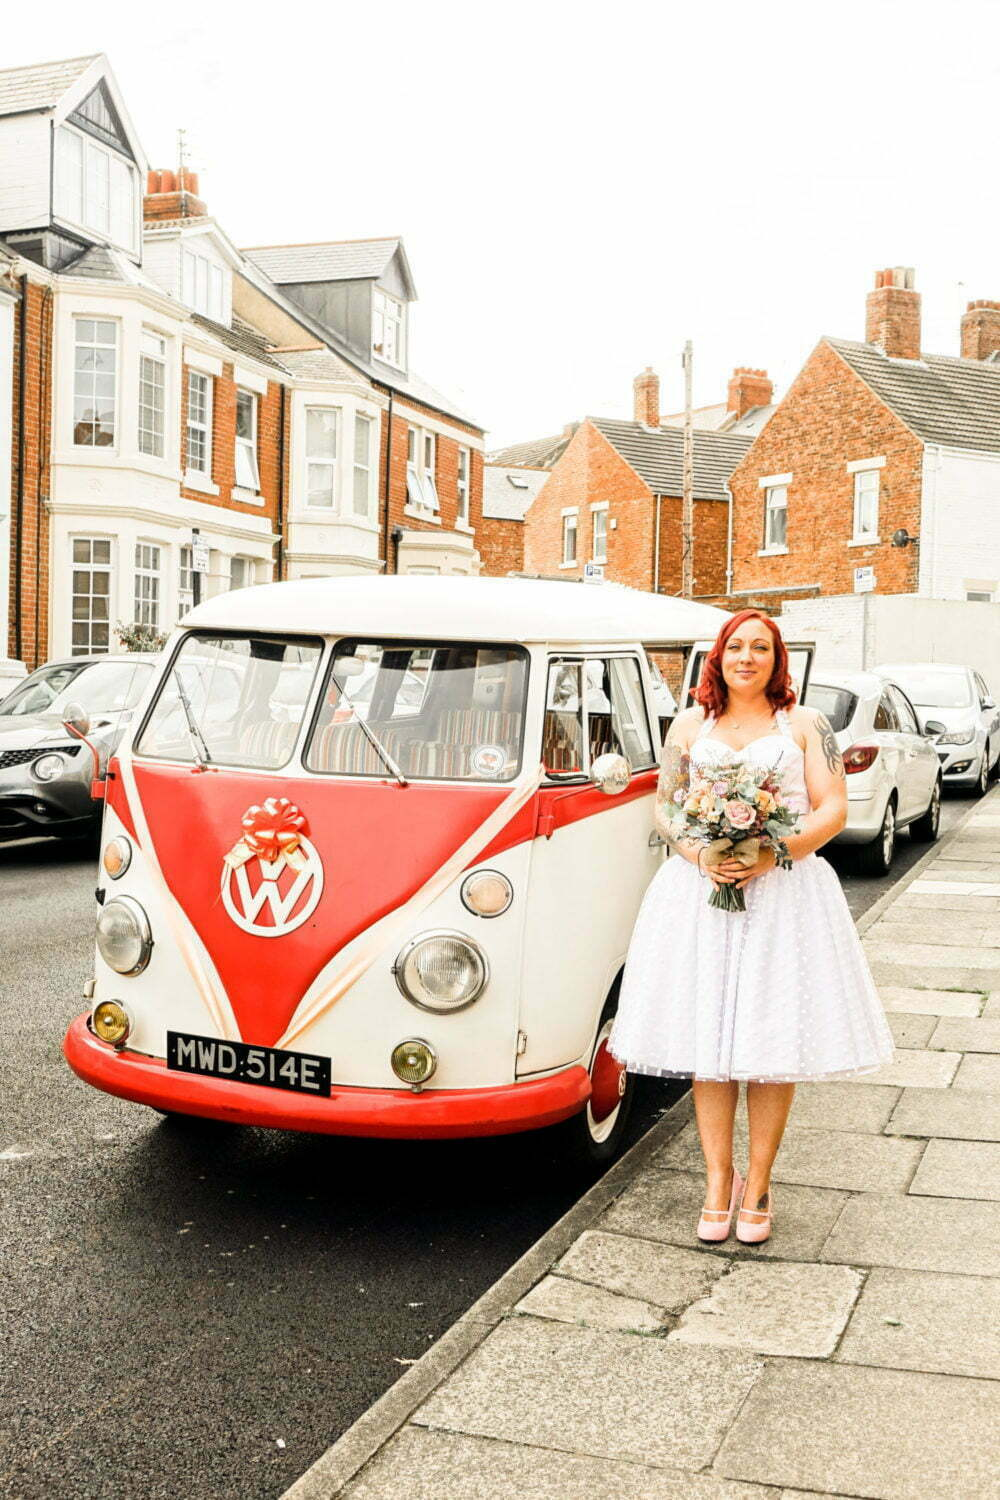 Bride in Wedding Dress with VW Wedding Car Hire in Whitley Bay North East